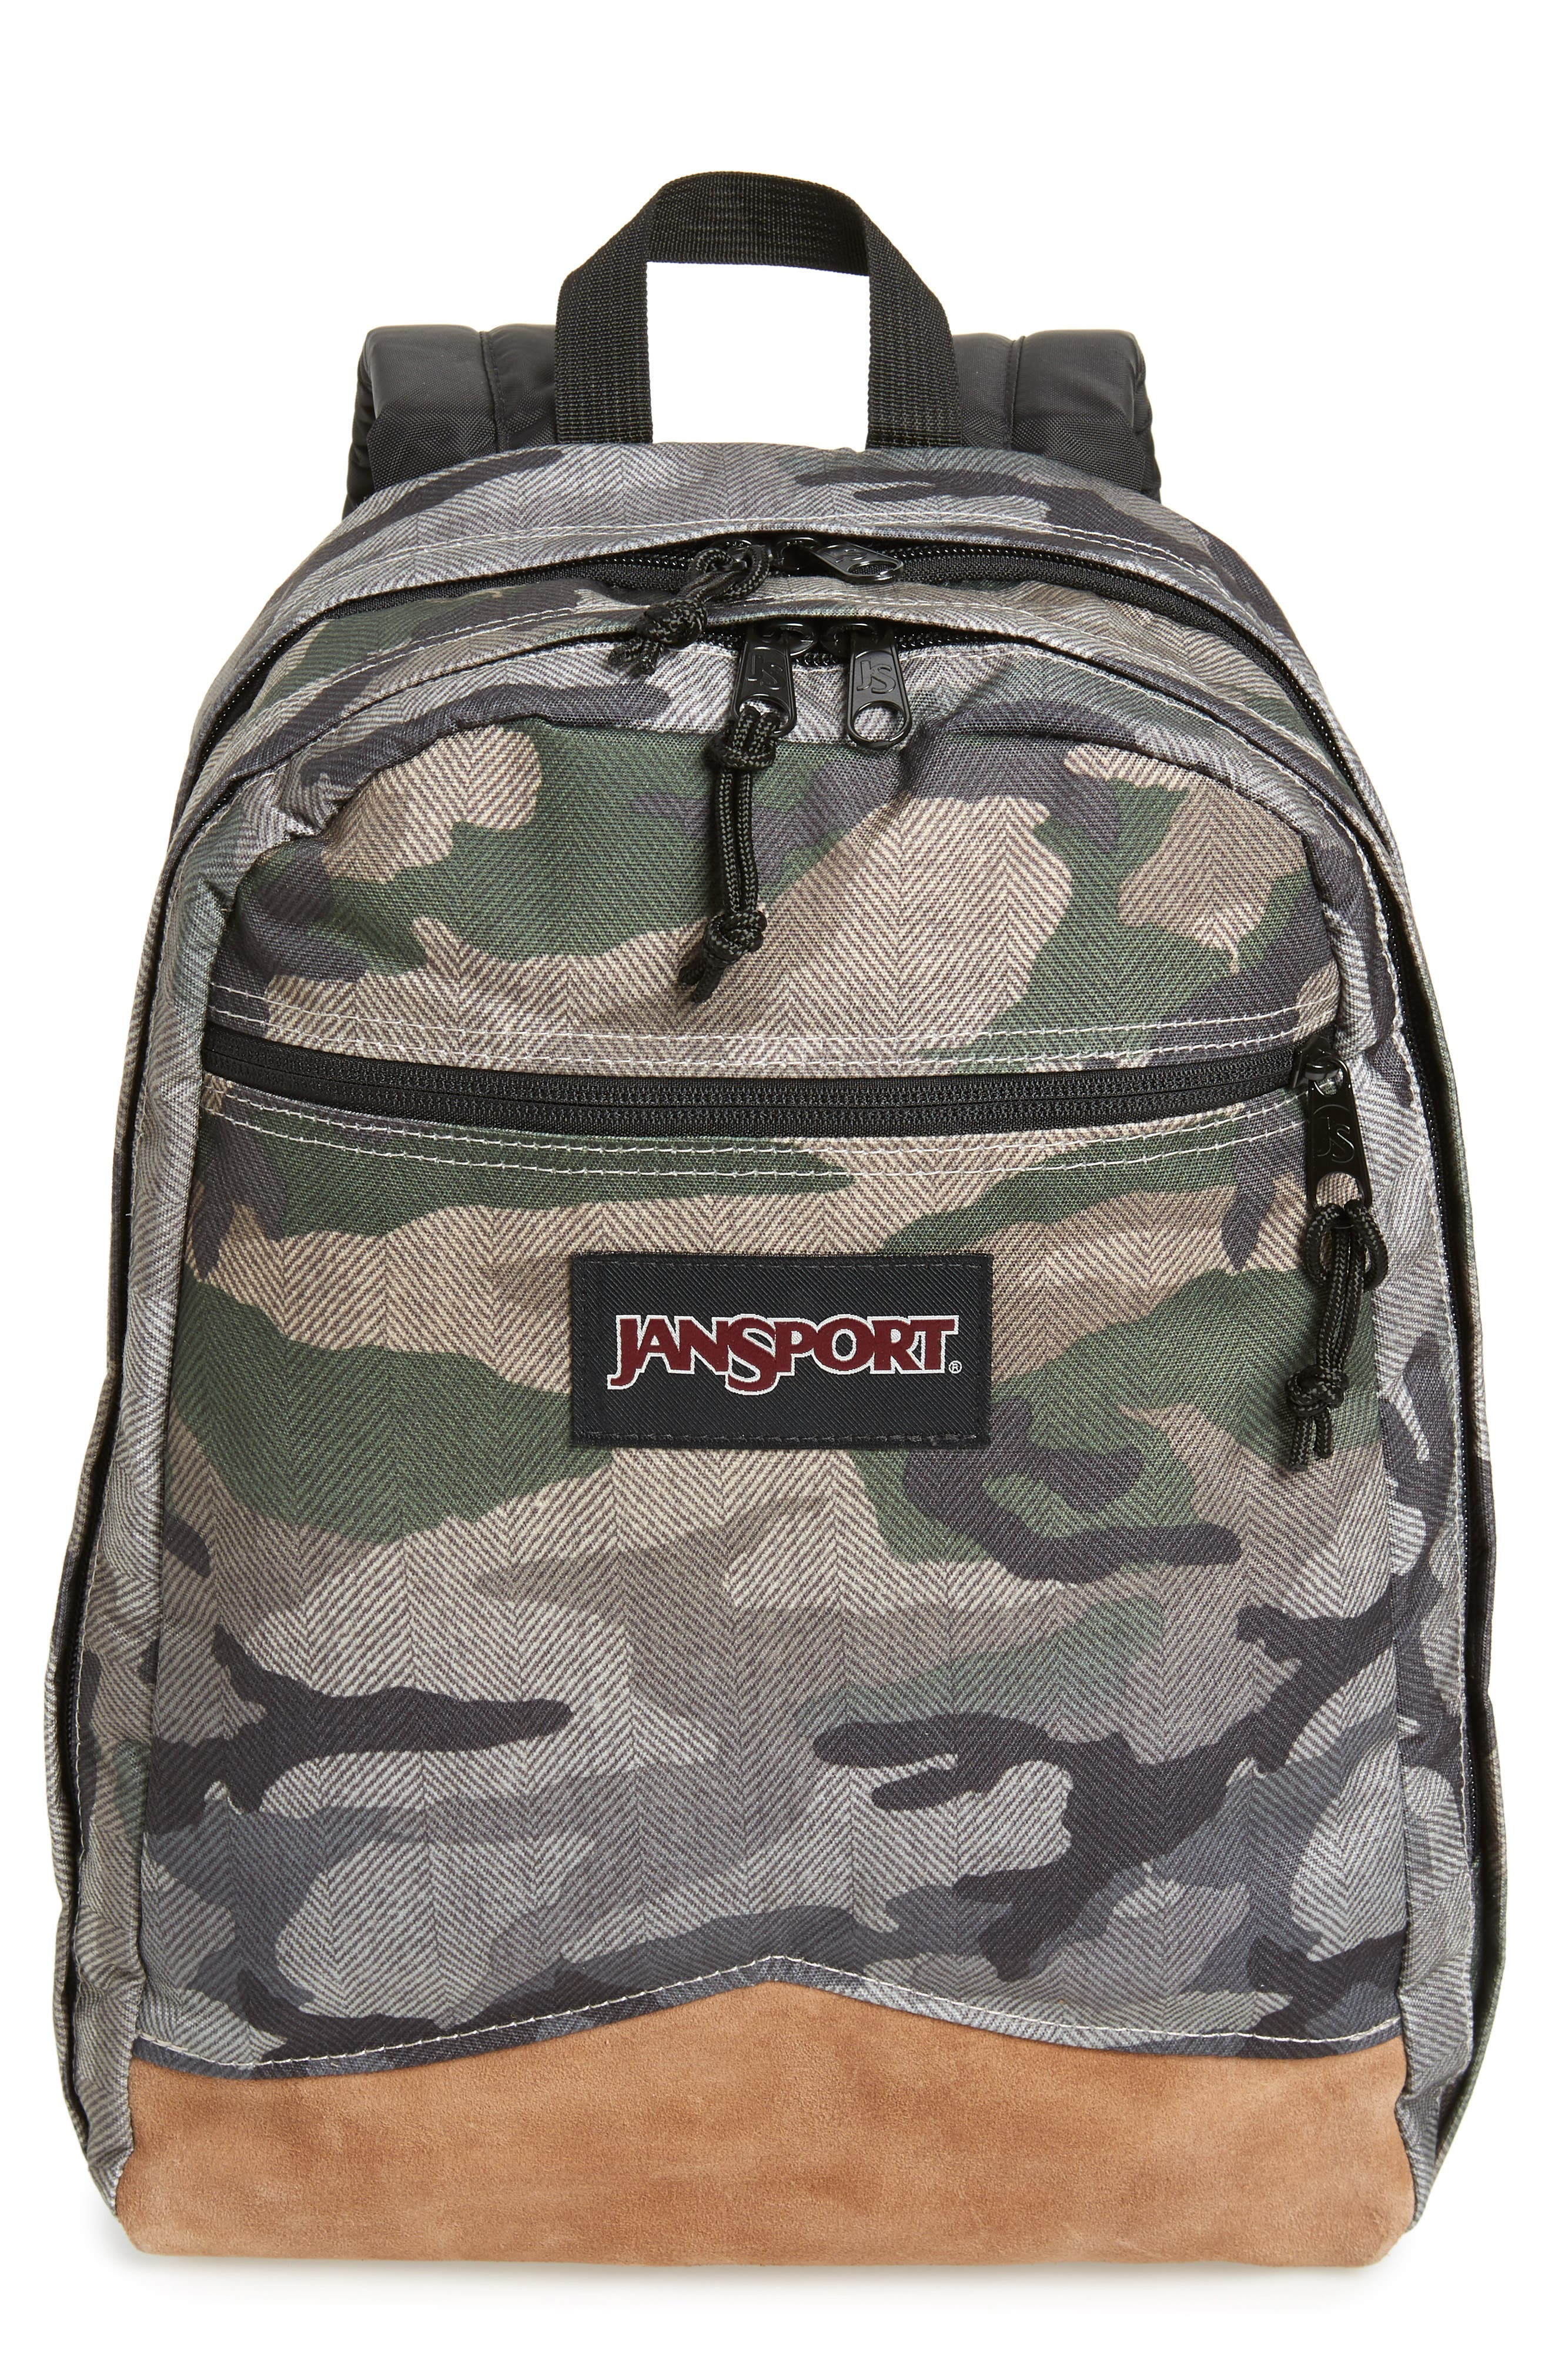 JANSPORT FREEDOM BACKPACK - IVORY